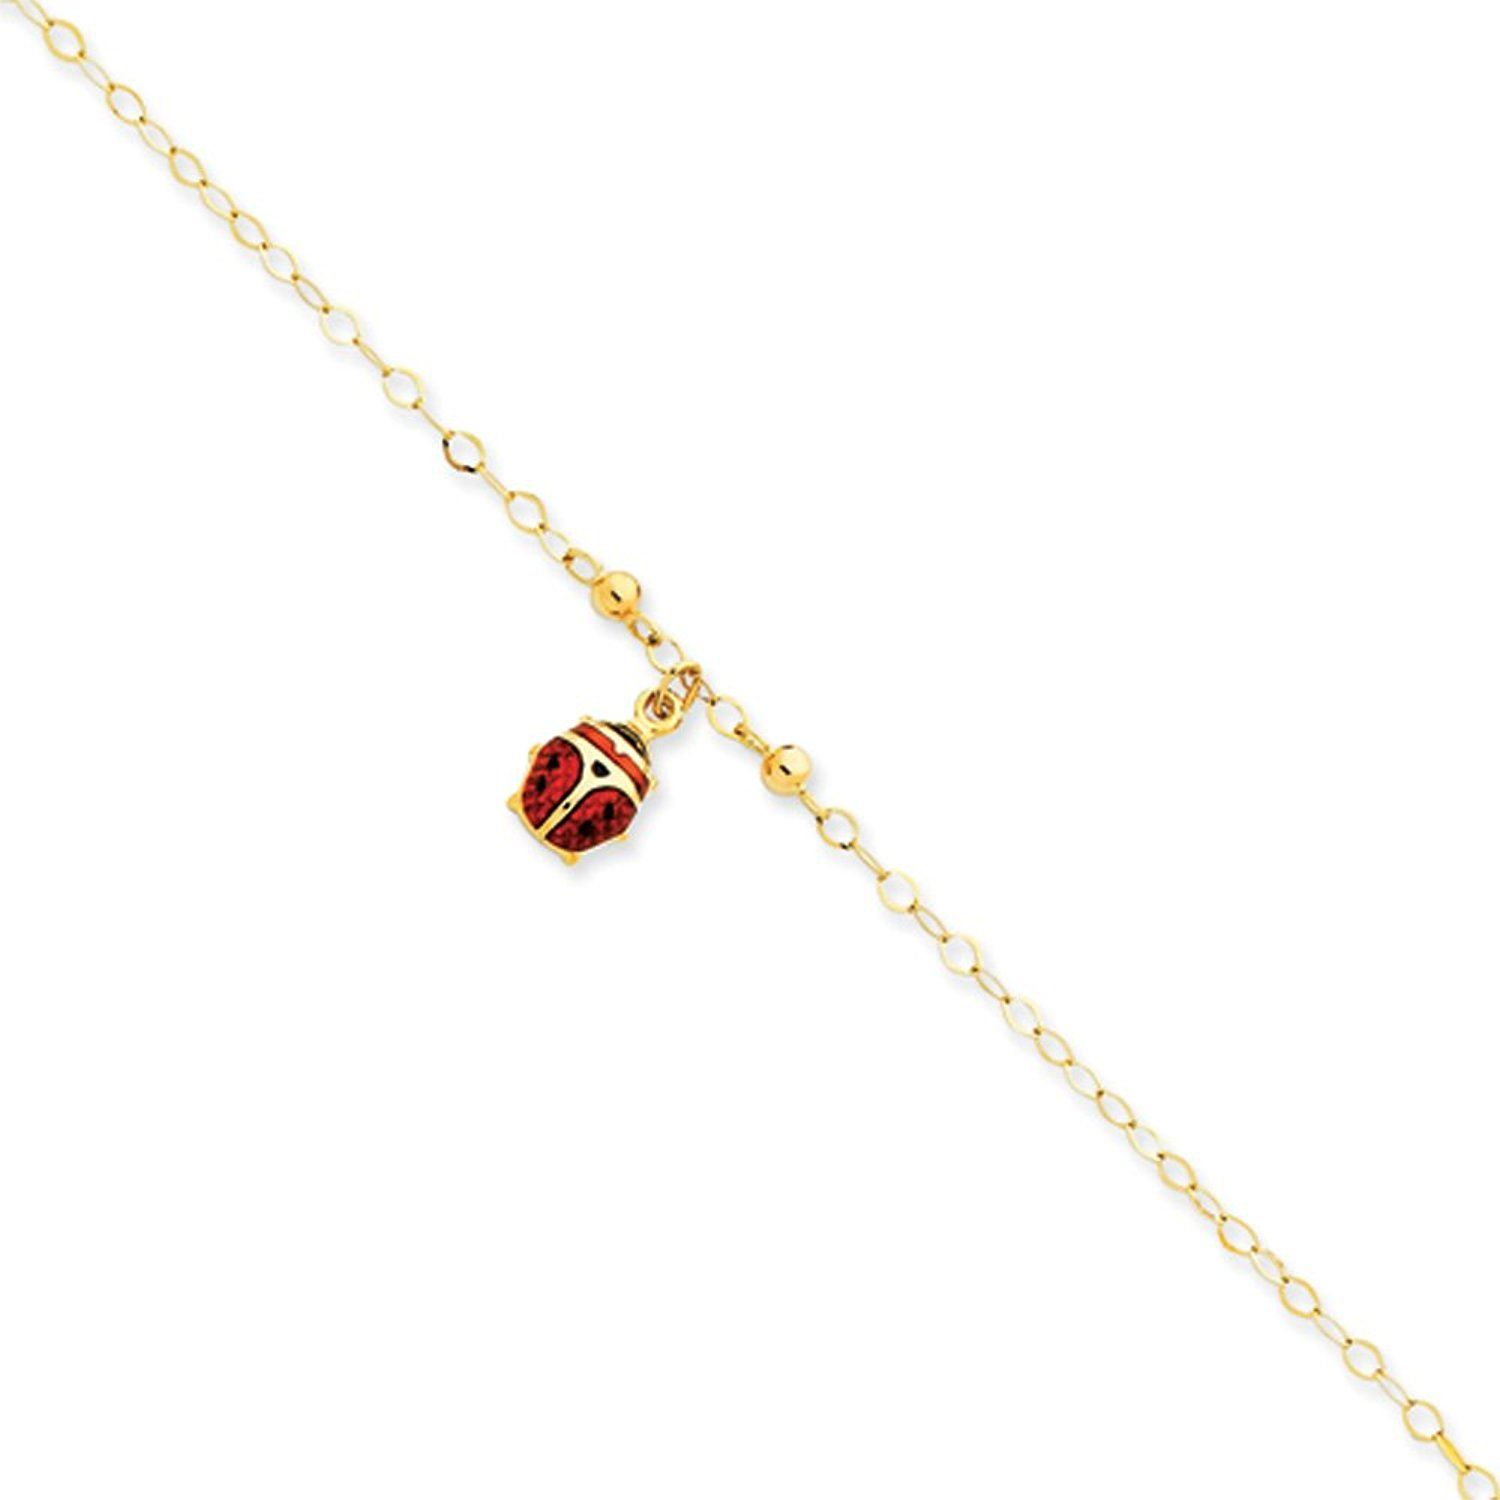 bracelets silver bracelet carat bling in anklet ankle gold charm red jewelry ladybug myshoplah sterling